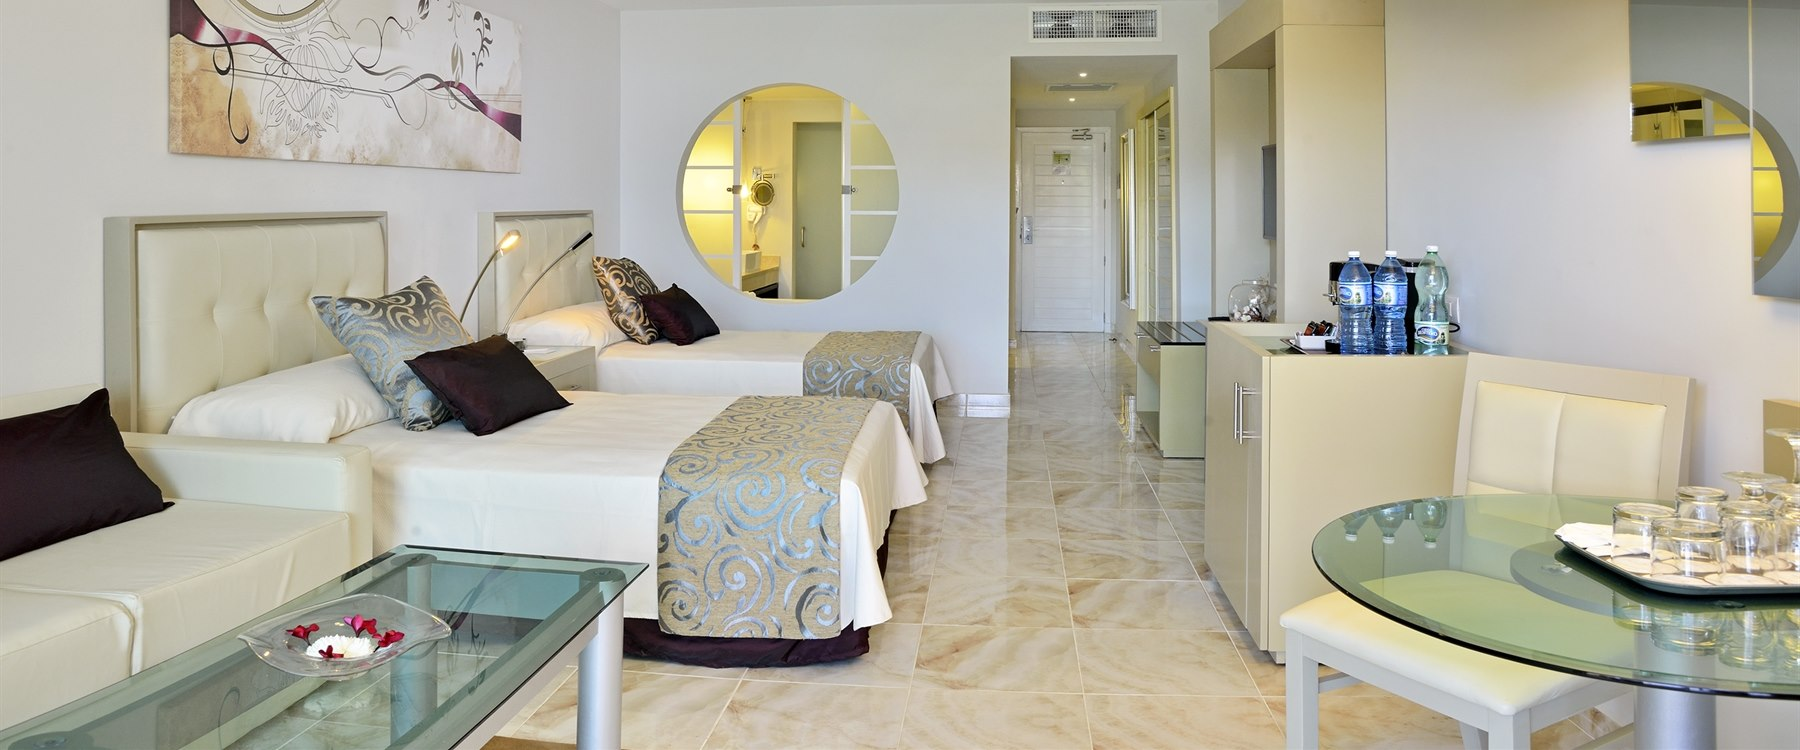 Family Concierge Junior Suite at Paradisus Varadero